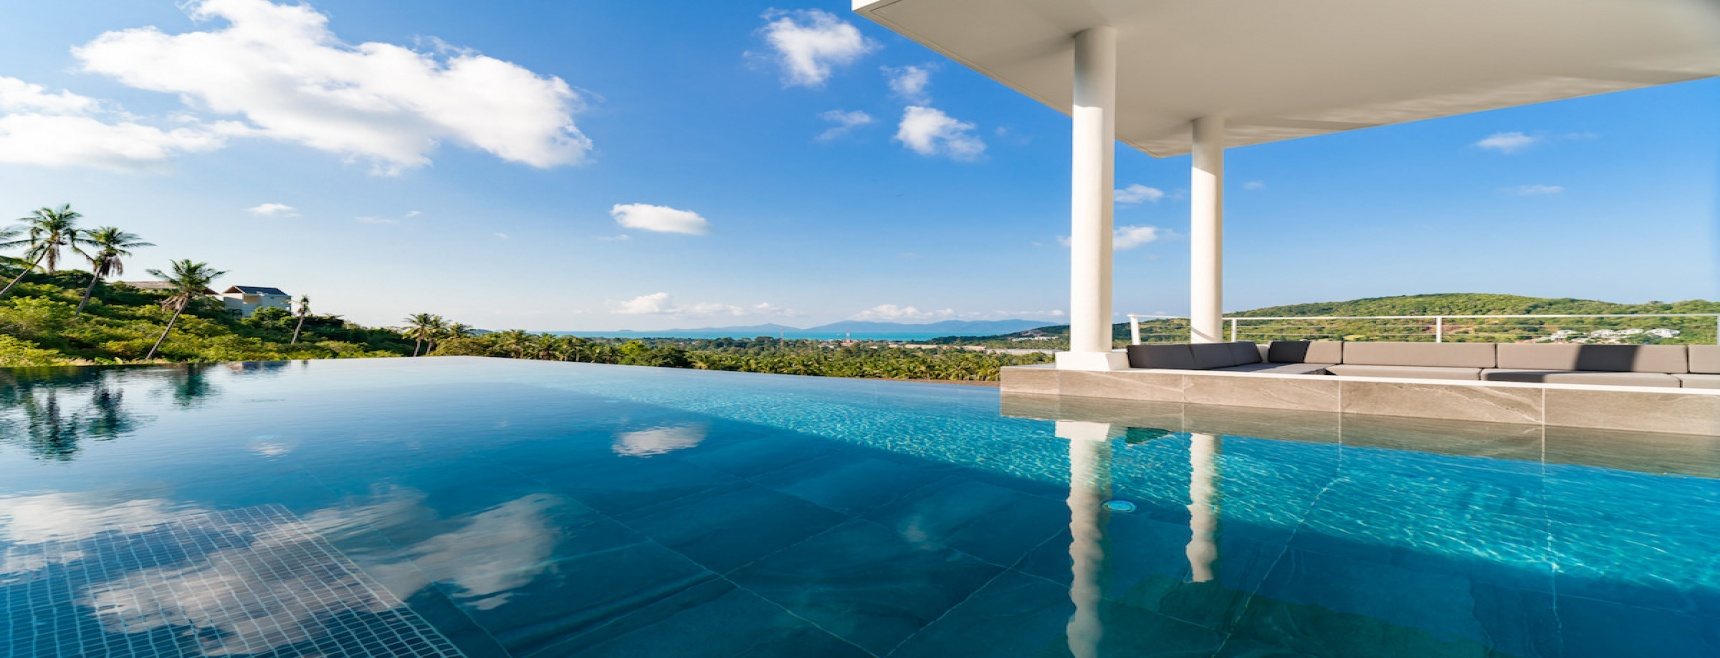 Private Sea View Villa In Gated Estate Bophut Koh Samui (Thai-Real.com)